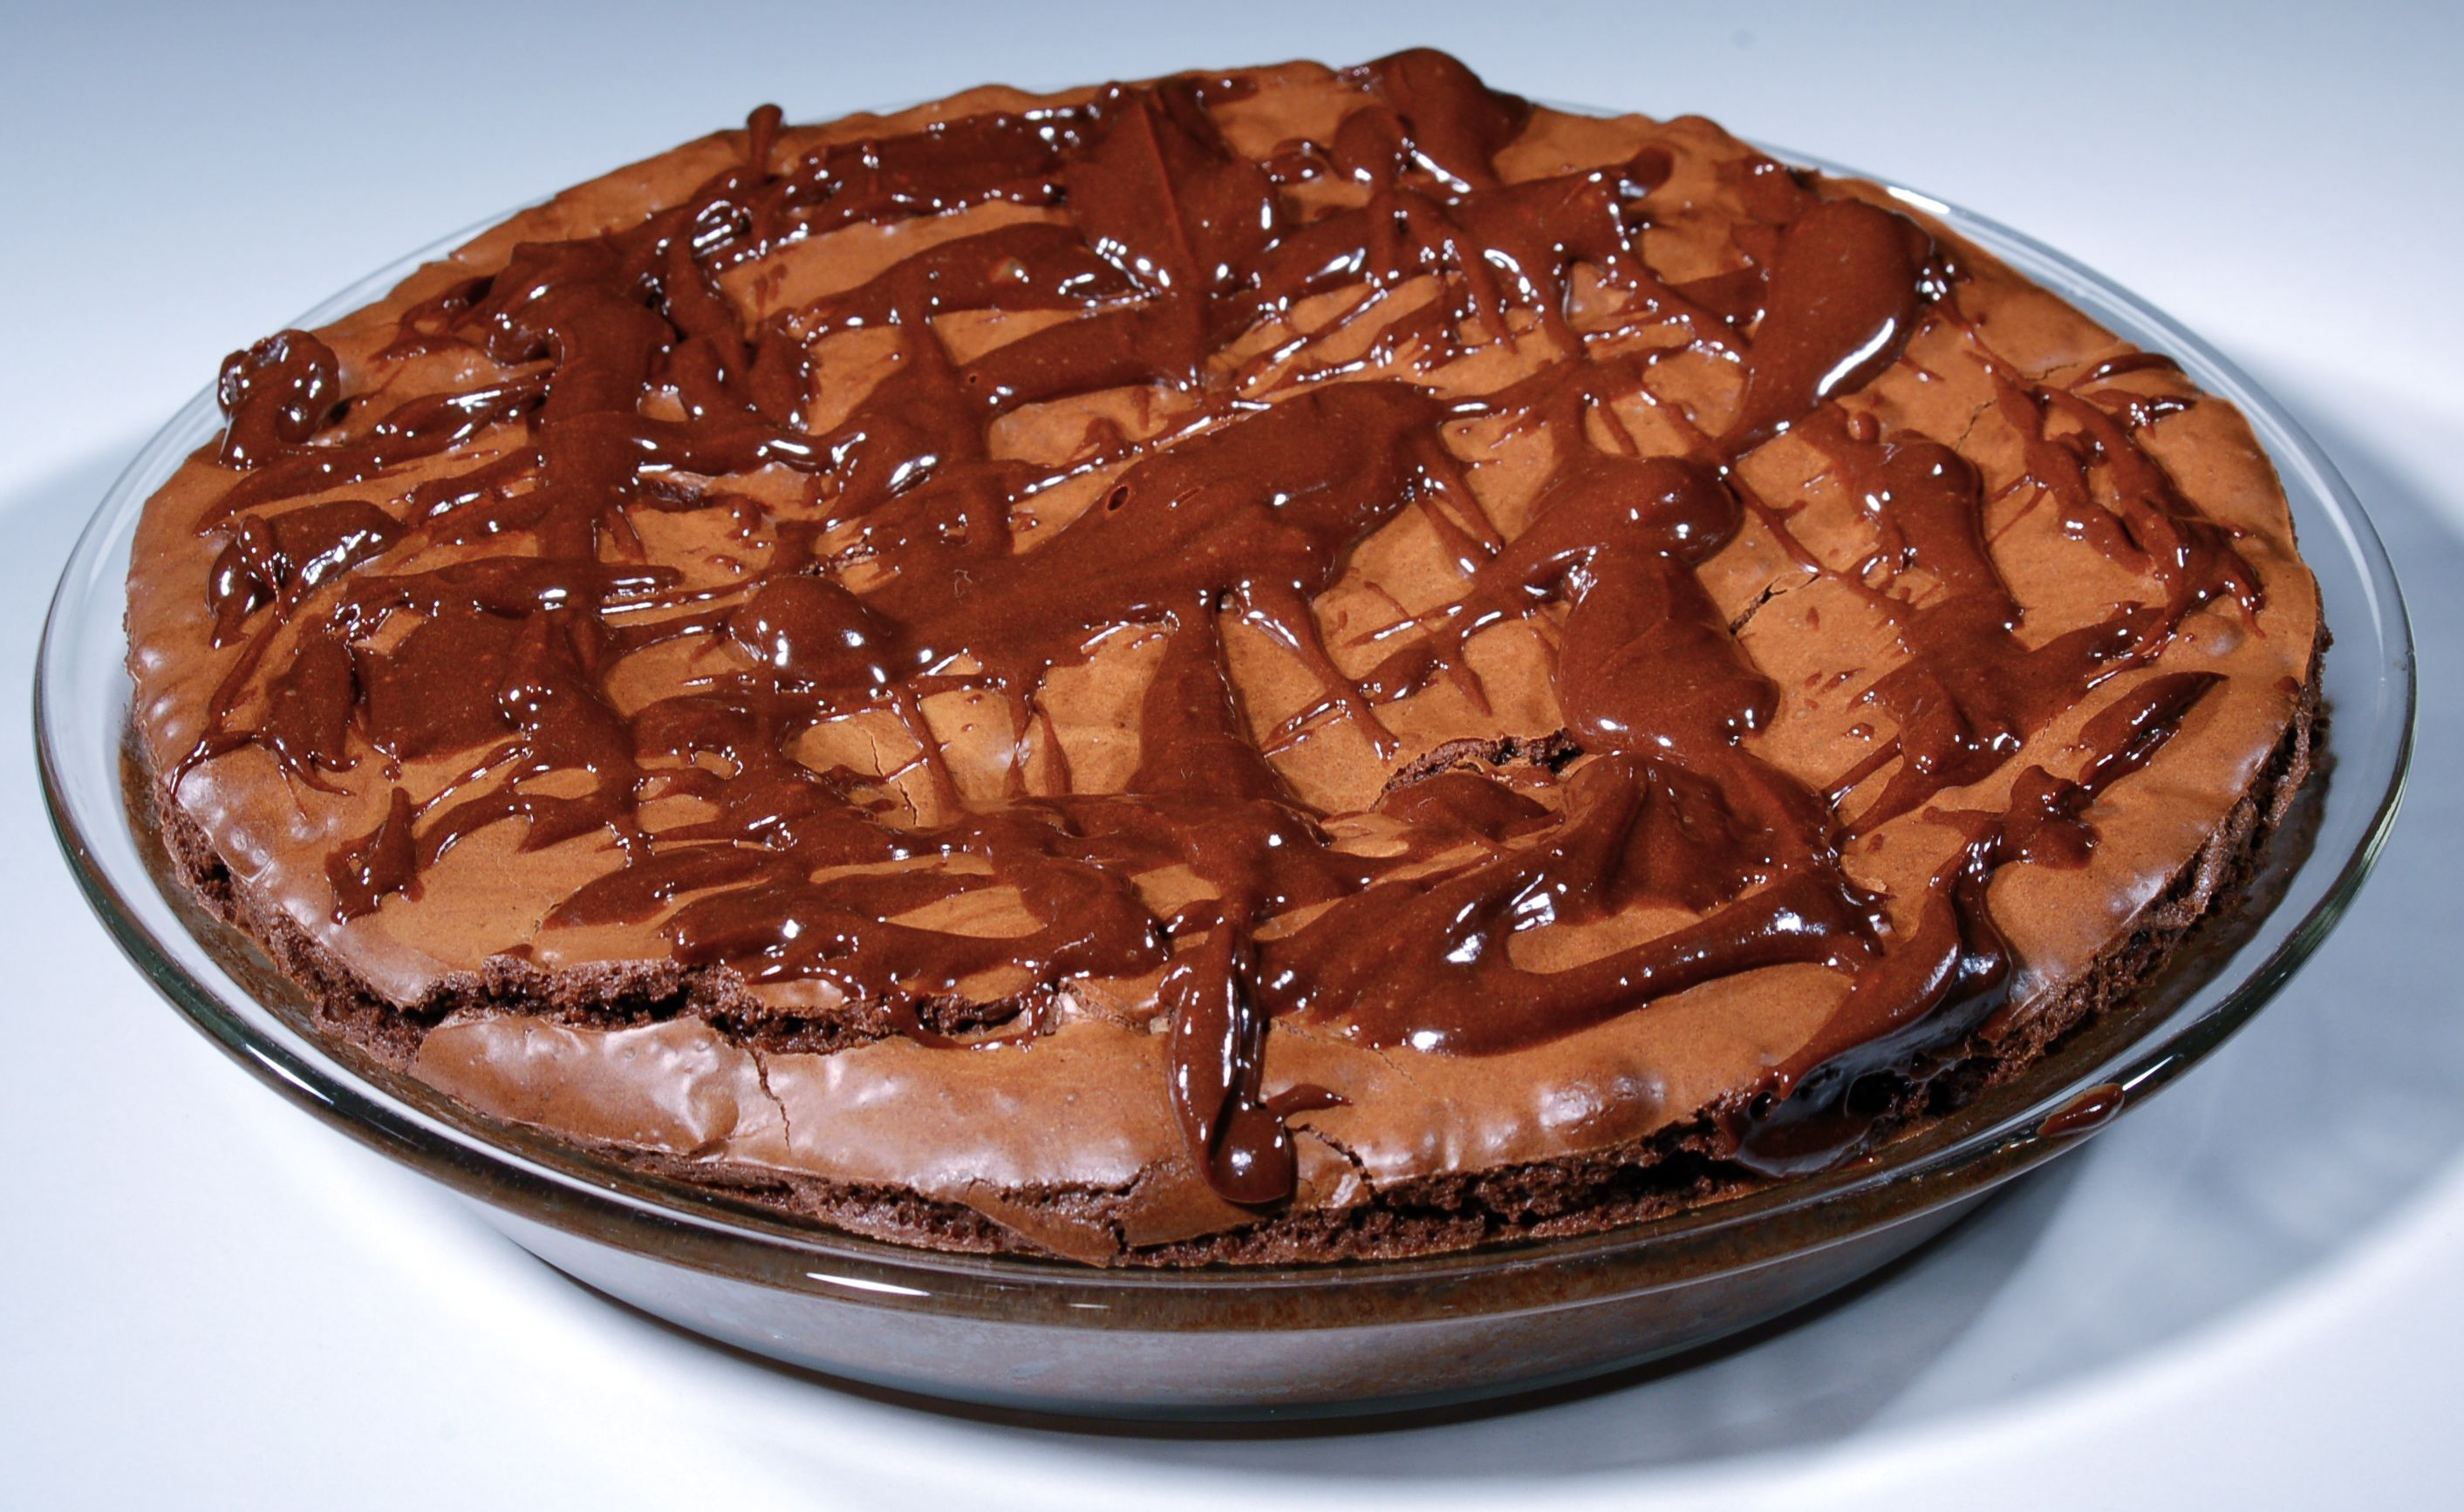 Barefoot Contessa Brownie Pie Recipe